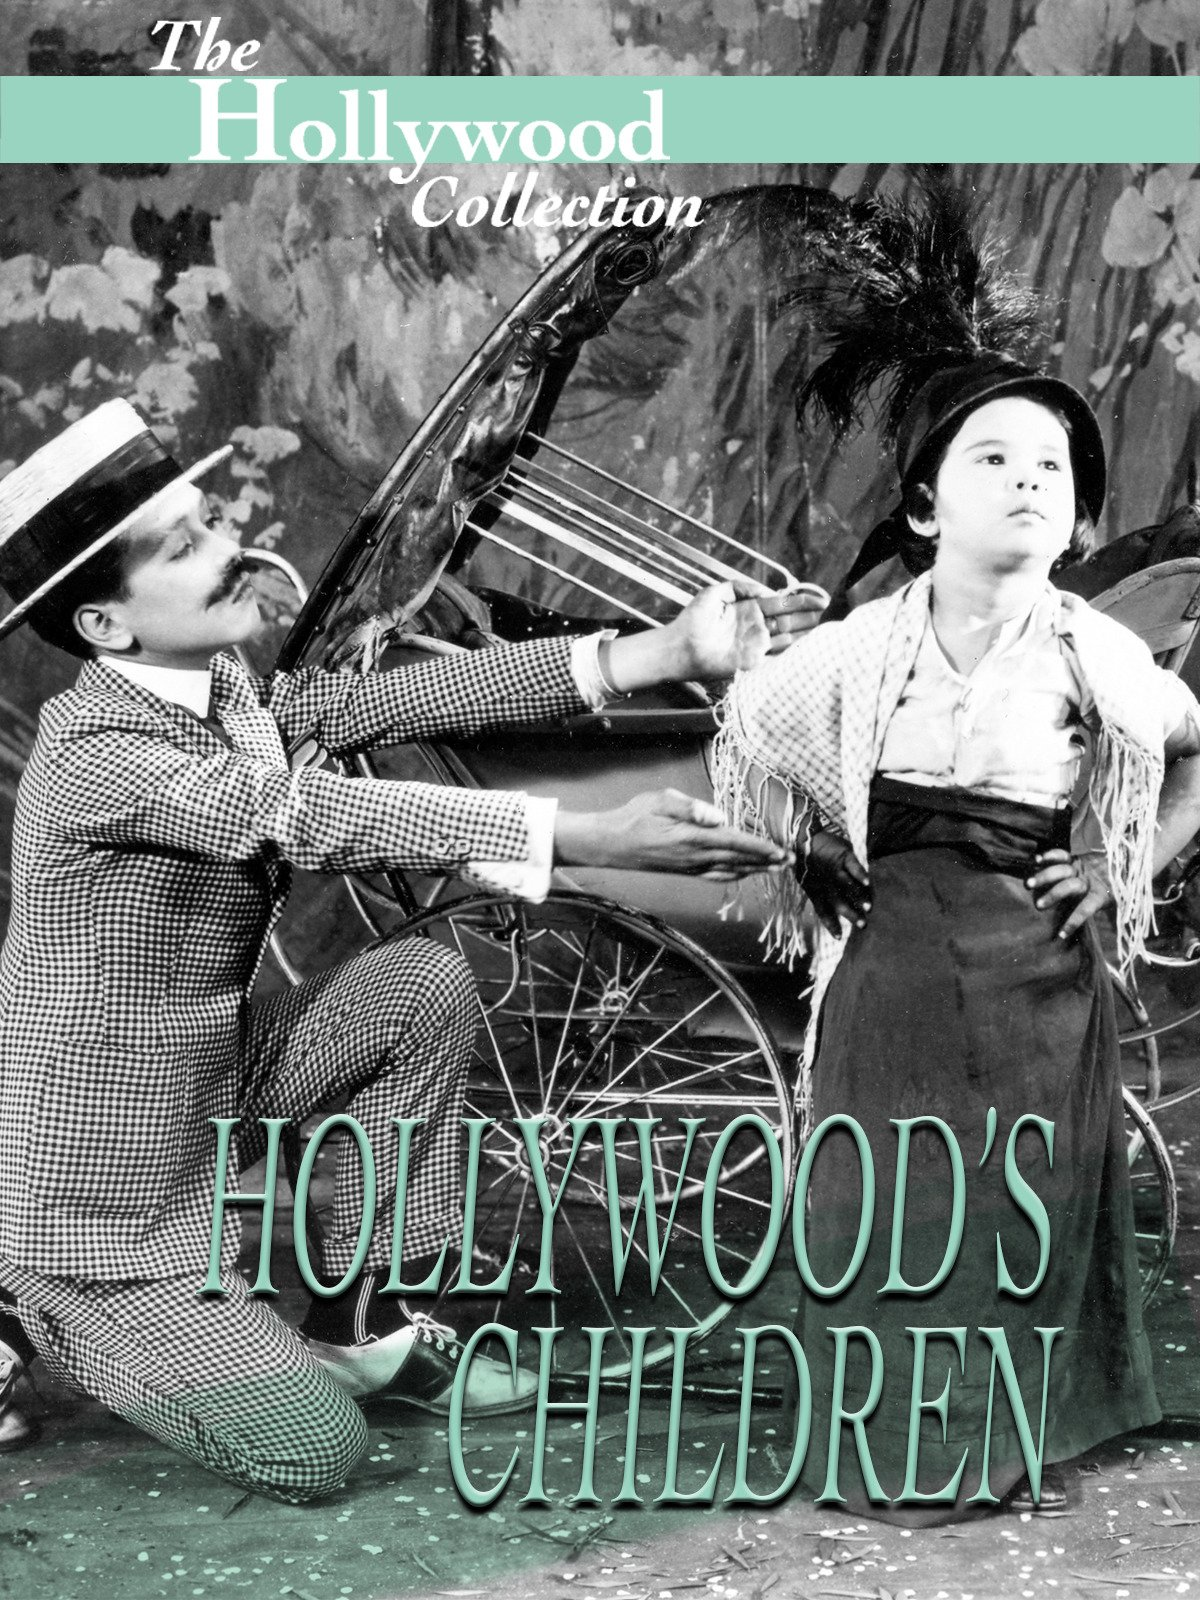 Hollywood Collection: Hollywood's Children